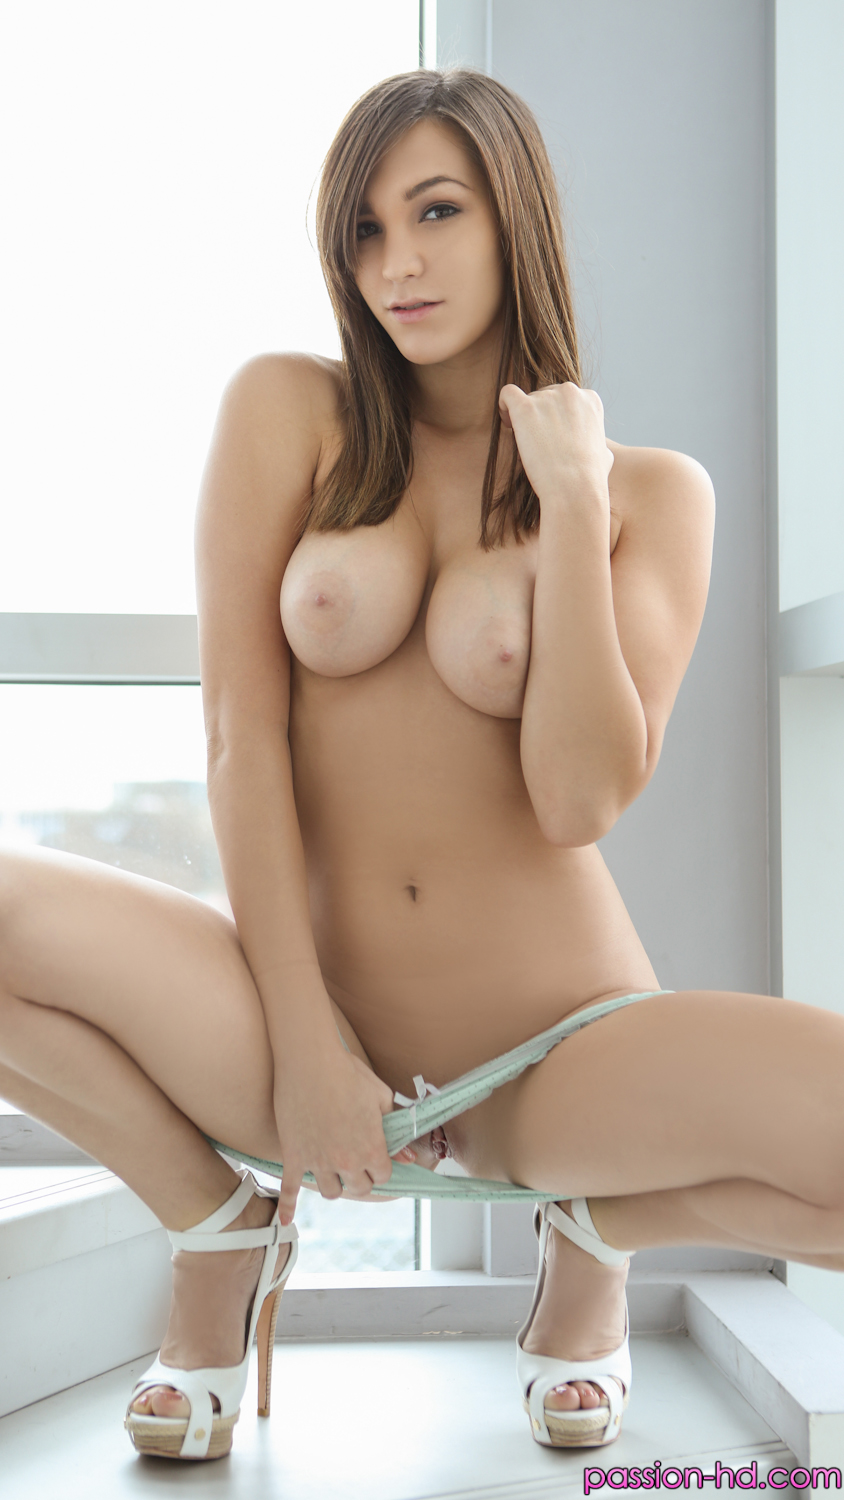 Holly michaels cam